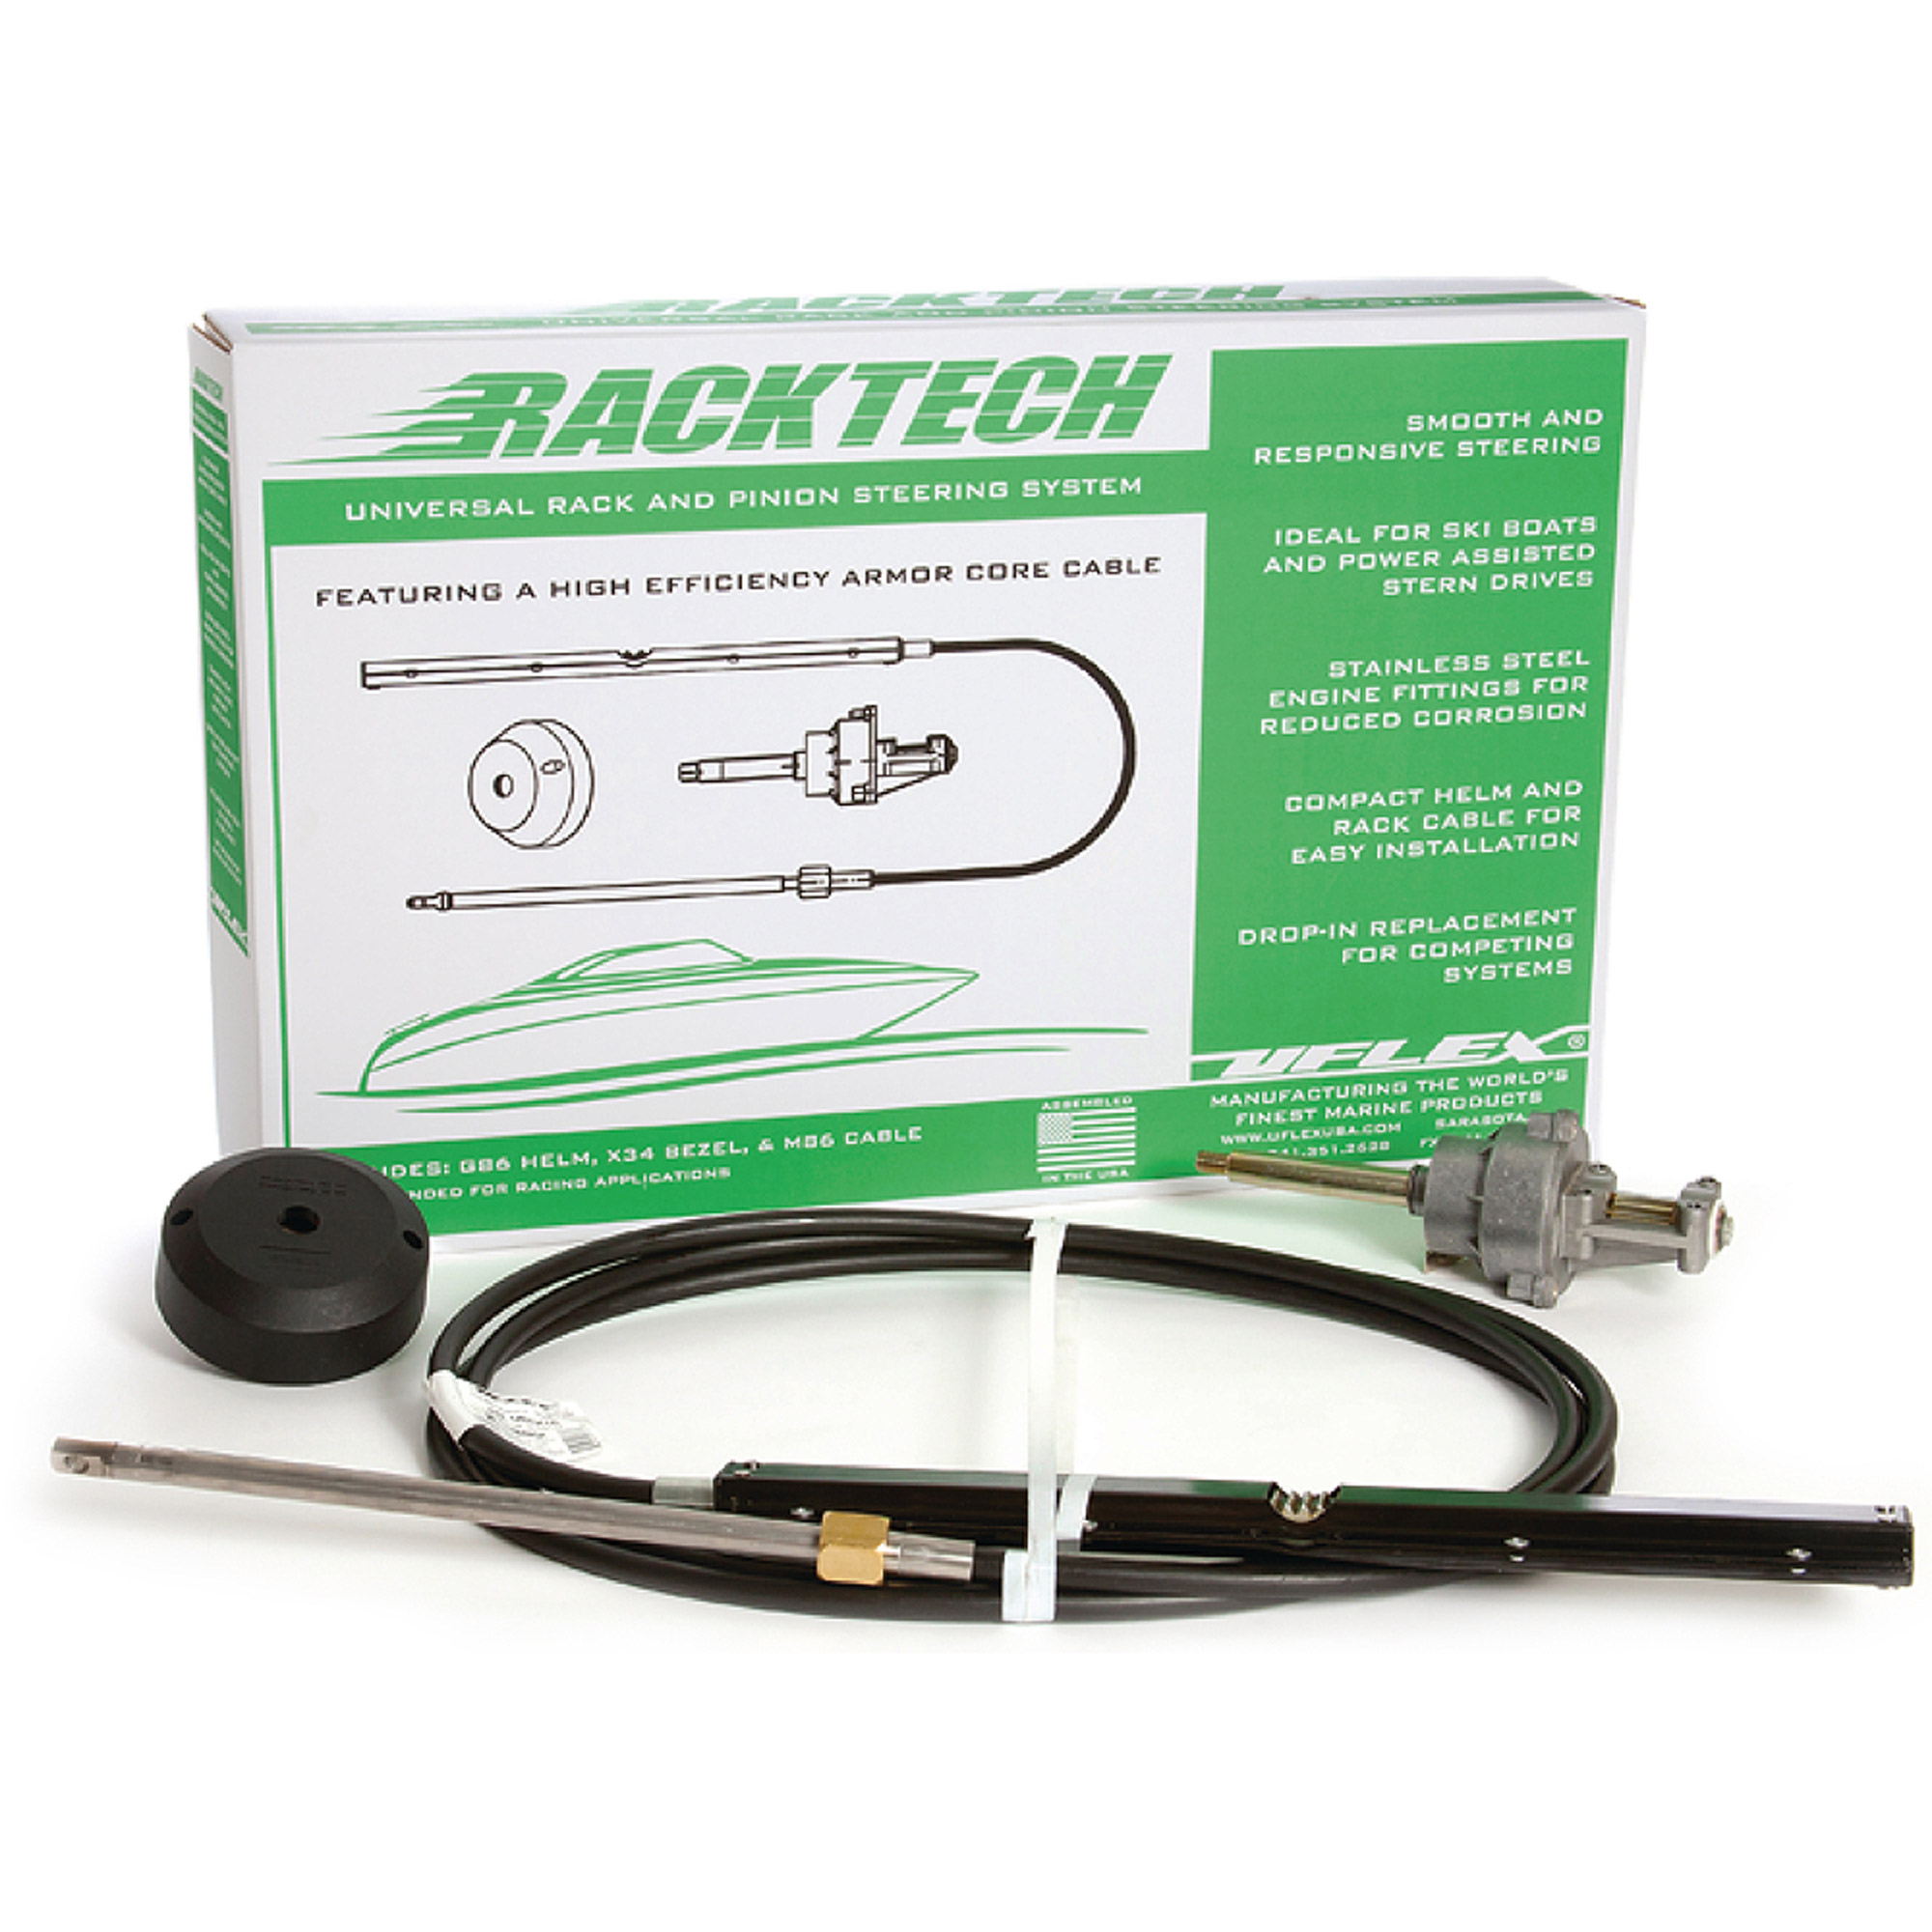 UFLEX Racktech Rack and Pinion Steering System